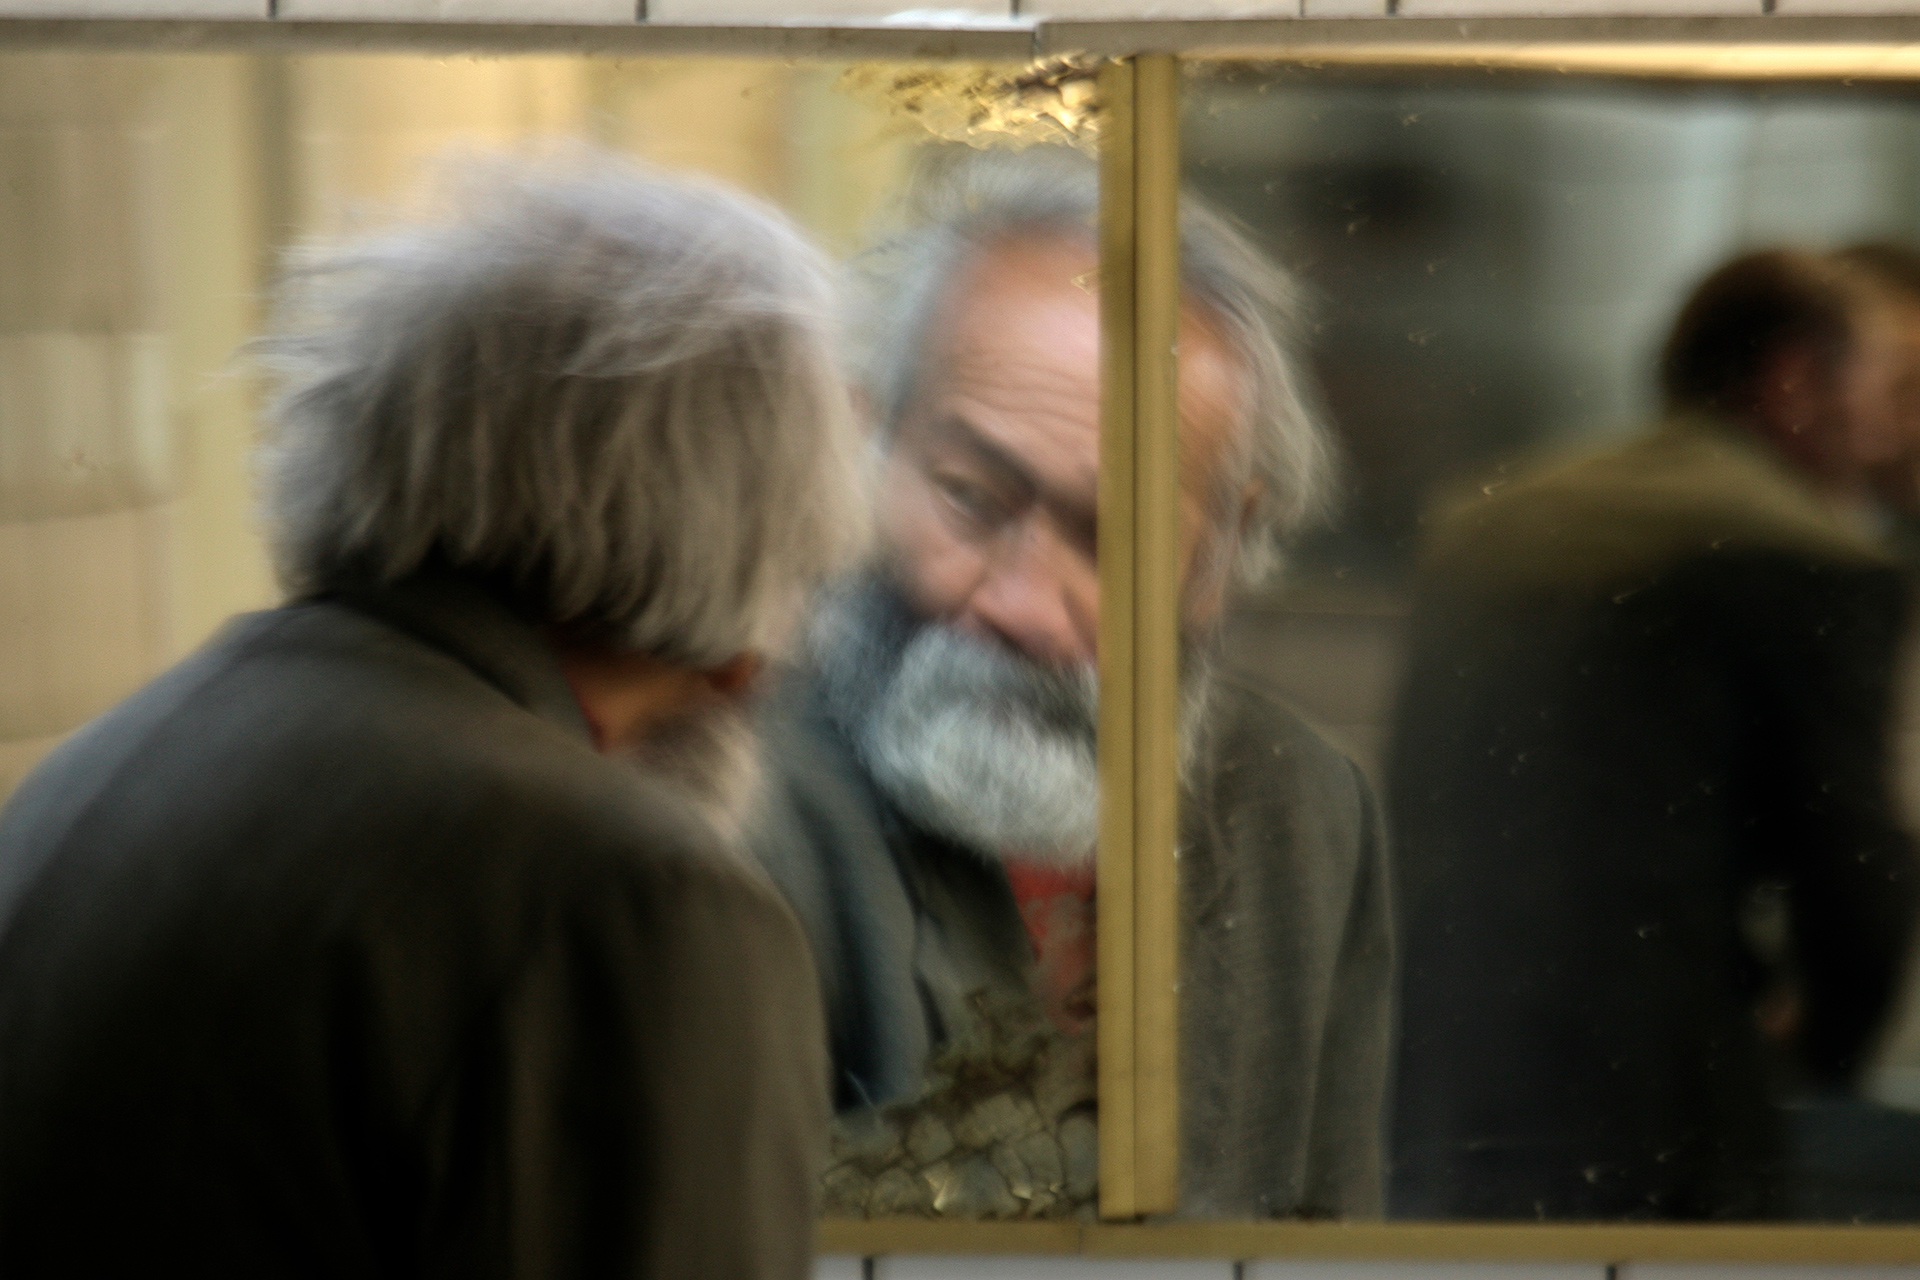 Muratbek, tramp, Almaty, Kazakhstan, angel, grandfather, old, homelessness, poor, reflection, mirror